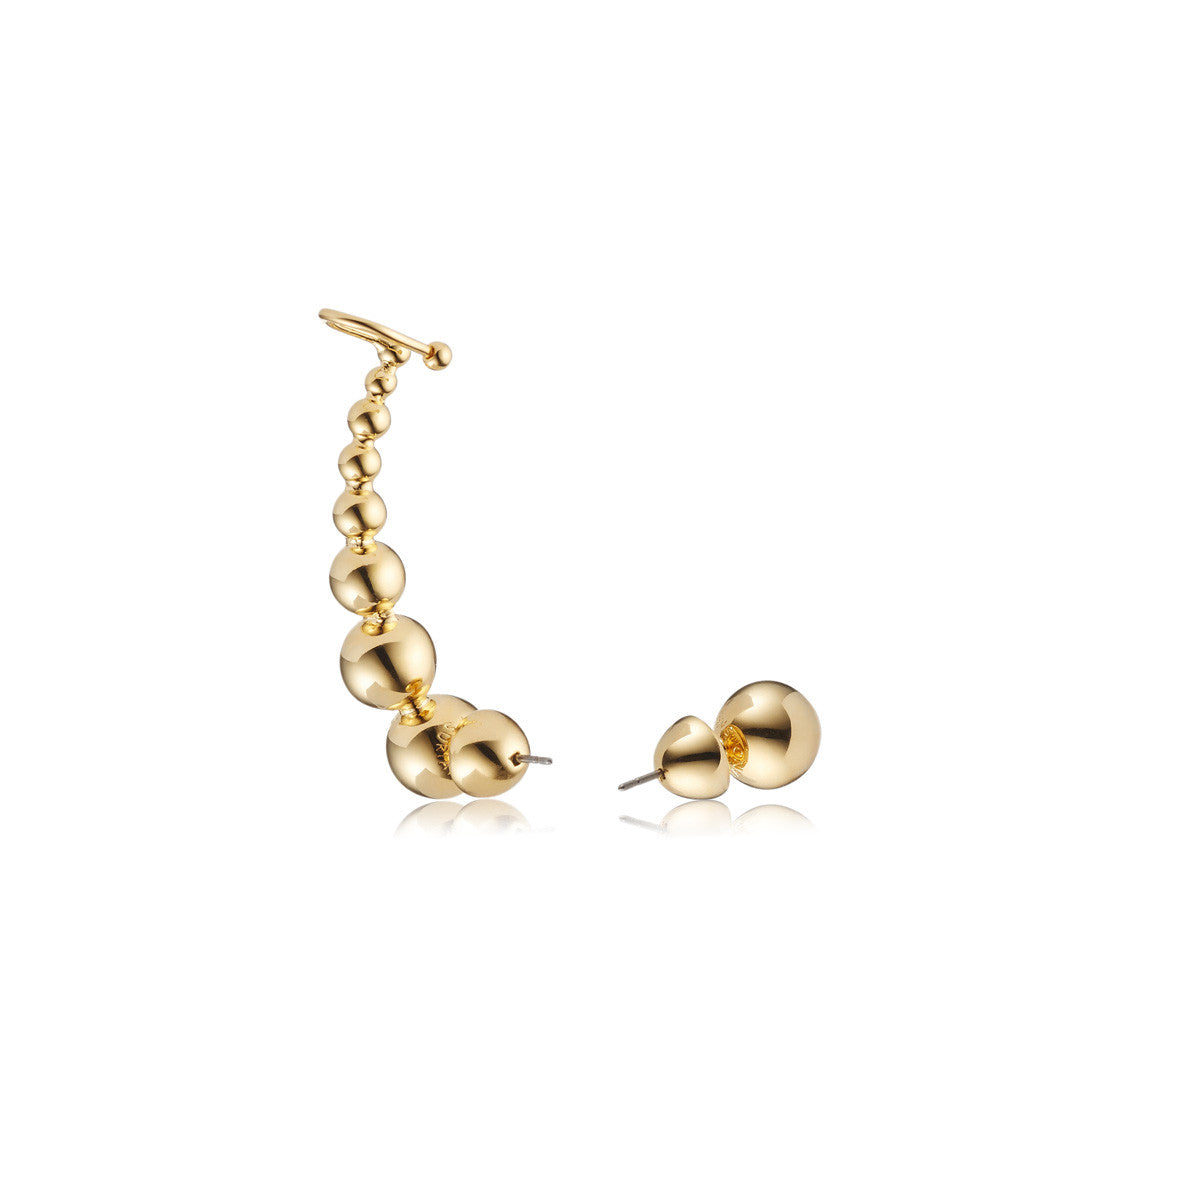 Solid brass, 18K gold plated Luna Kingdom ear cuff and stud – back